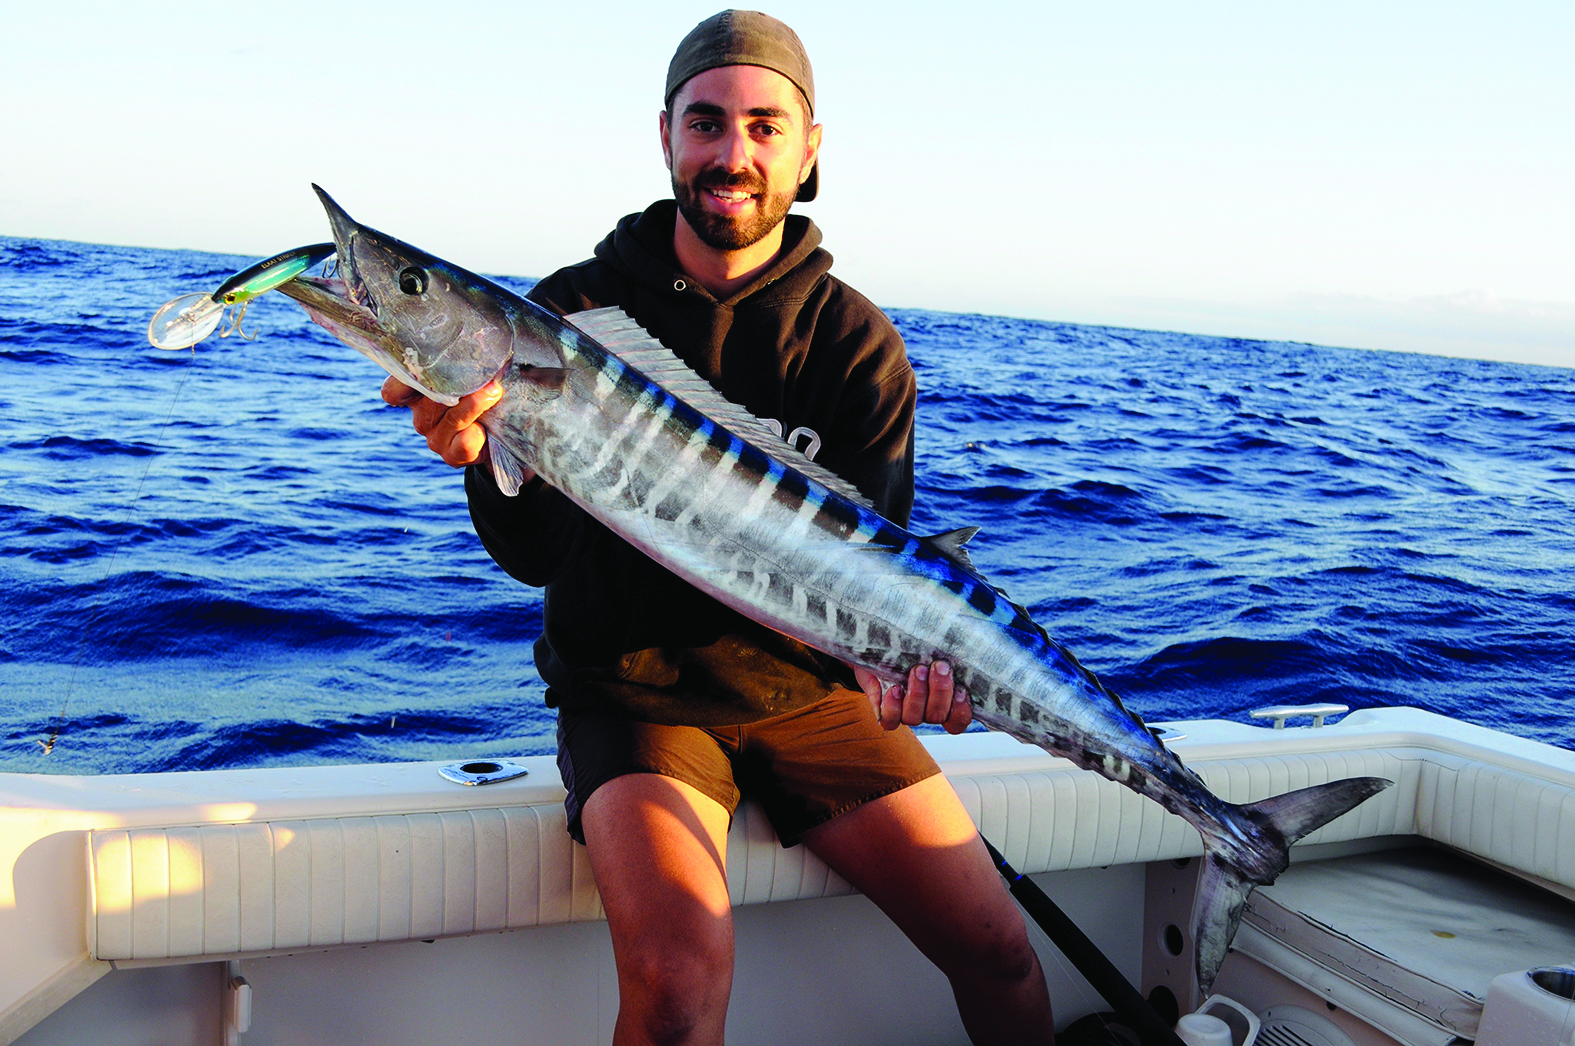 Peter with a great-sized school wahoo that took an ELKAT 120mm Striker Deep Diver.